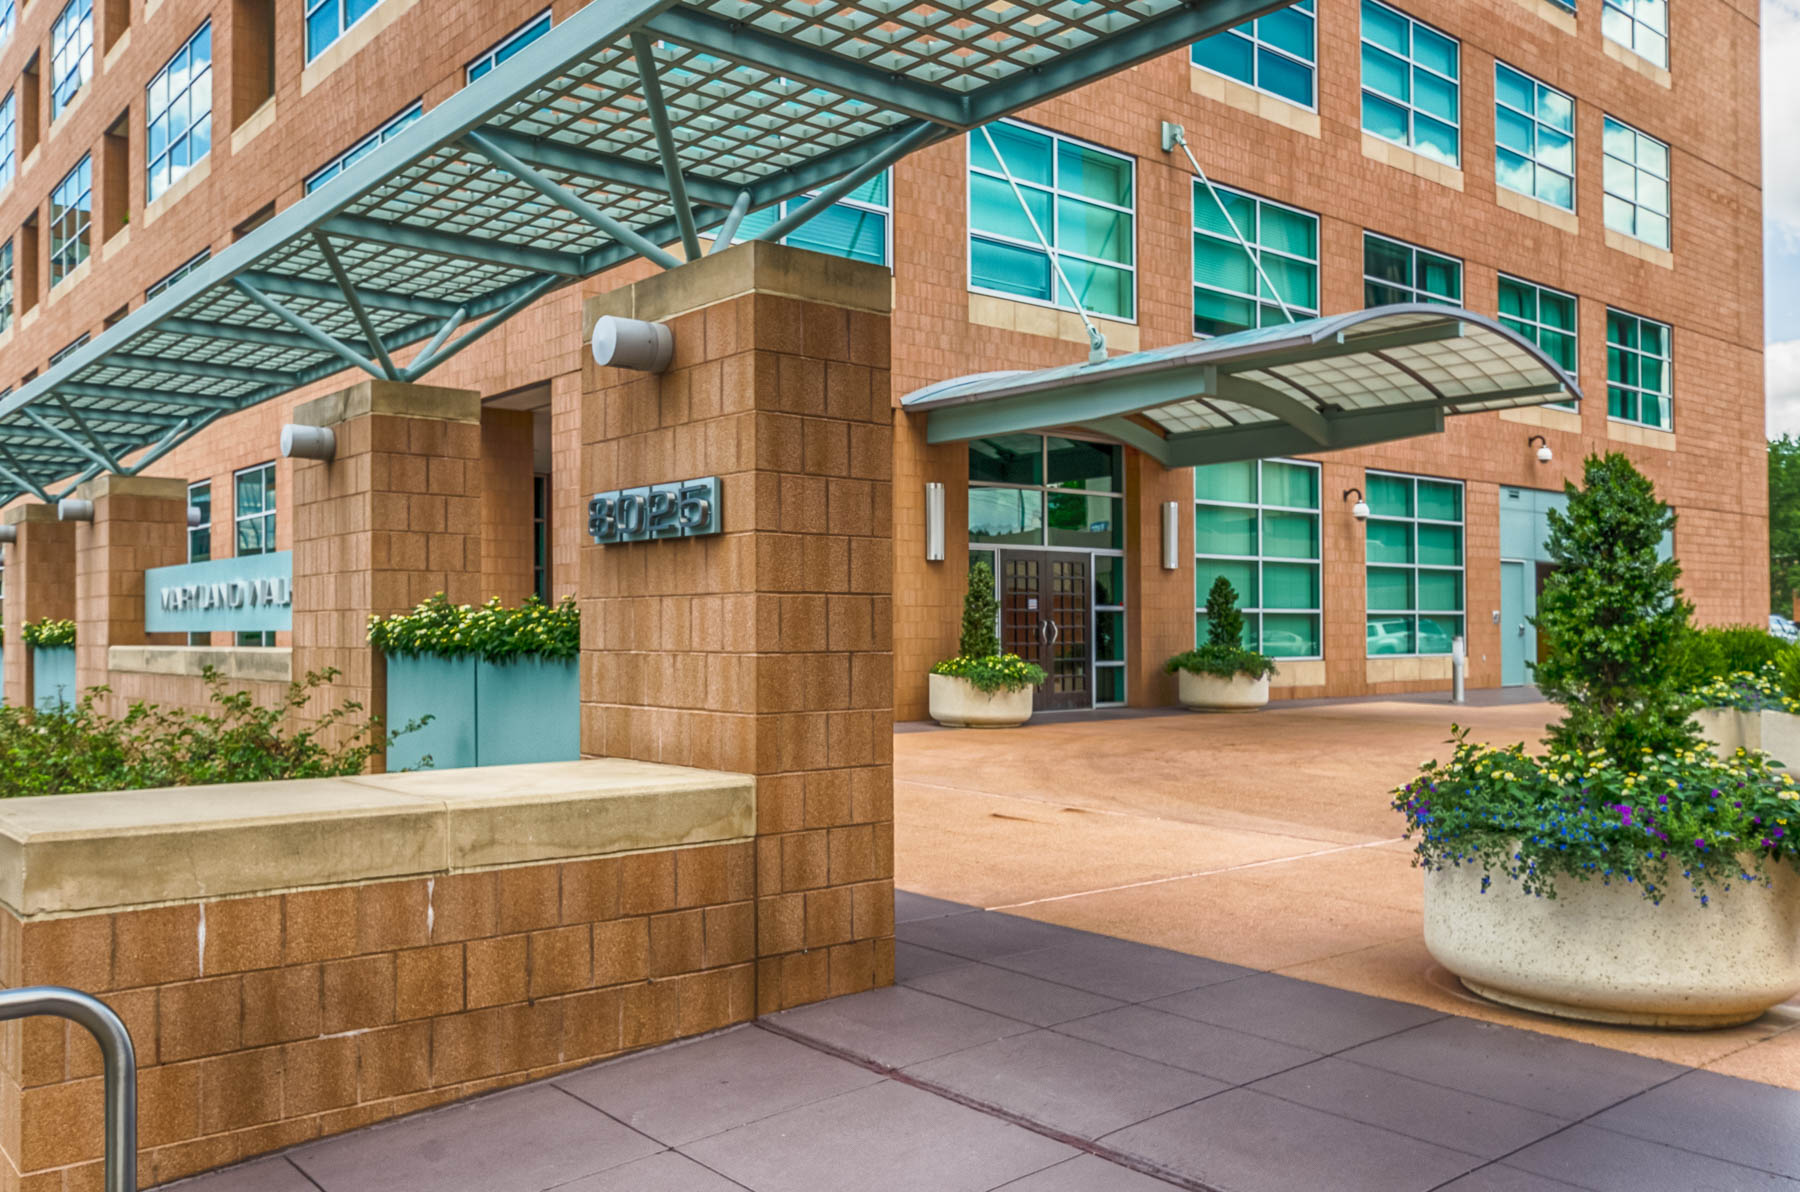 Condominium for Sale at Maryland Ave 8025 Maryland Ave # 5B St. Louis, Missouri 63105 United States